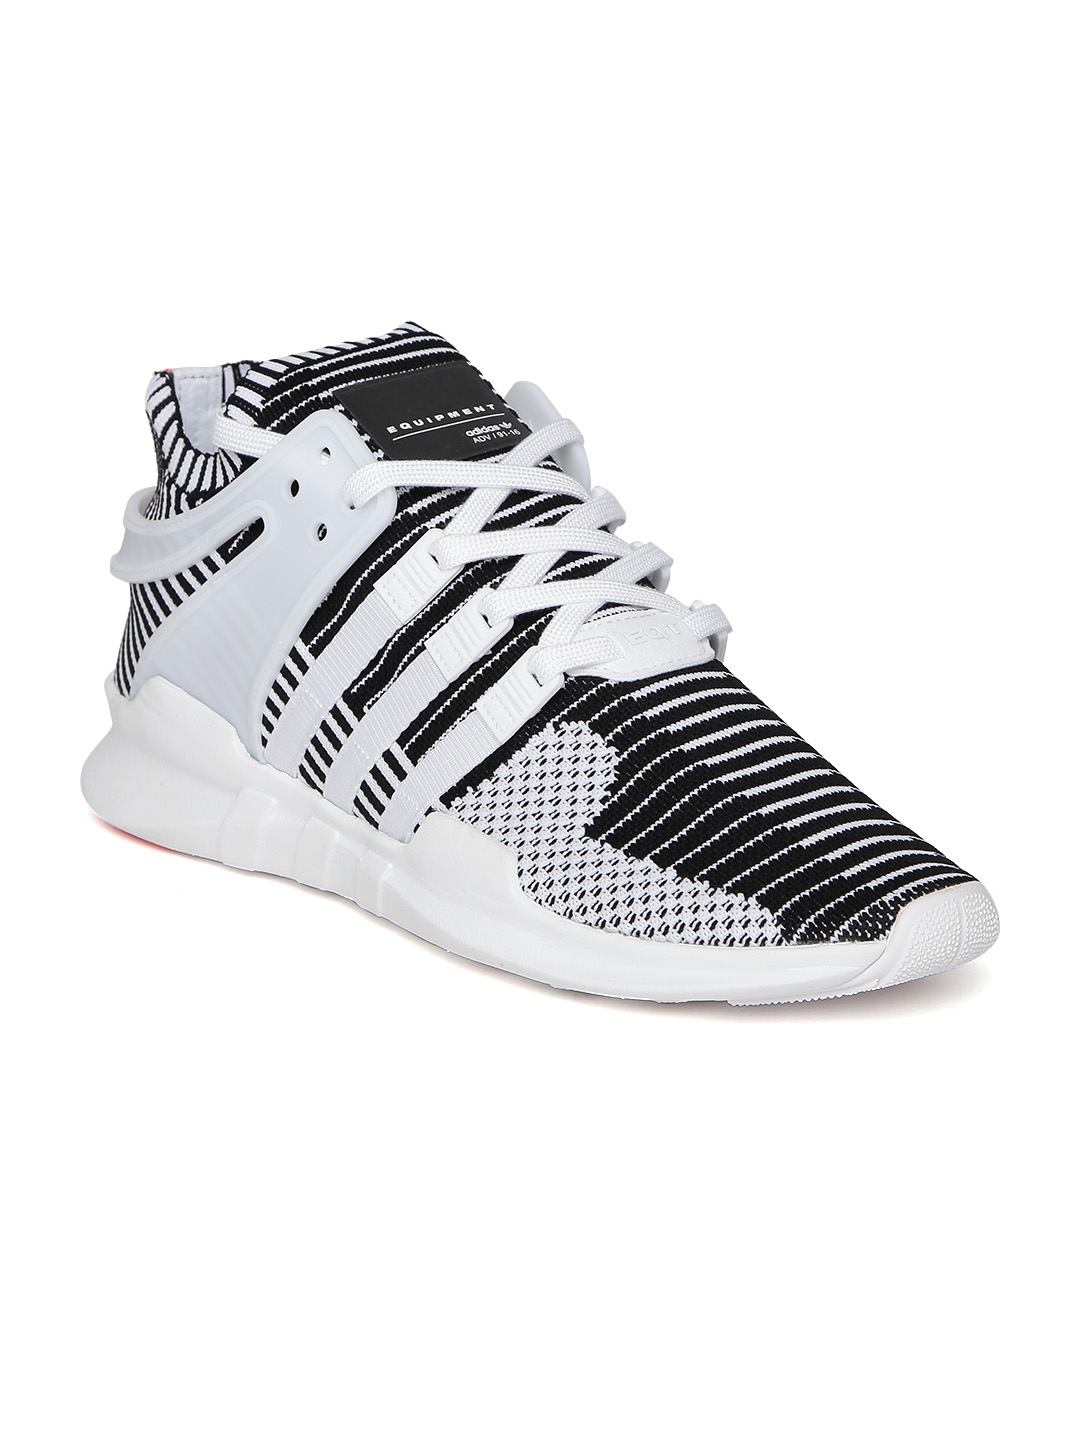 9a8725d09389e2 ADIDAS Originals Men White   Black EQT Support ADV Primeknit Woven Sneakers